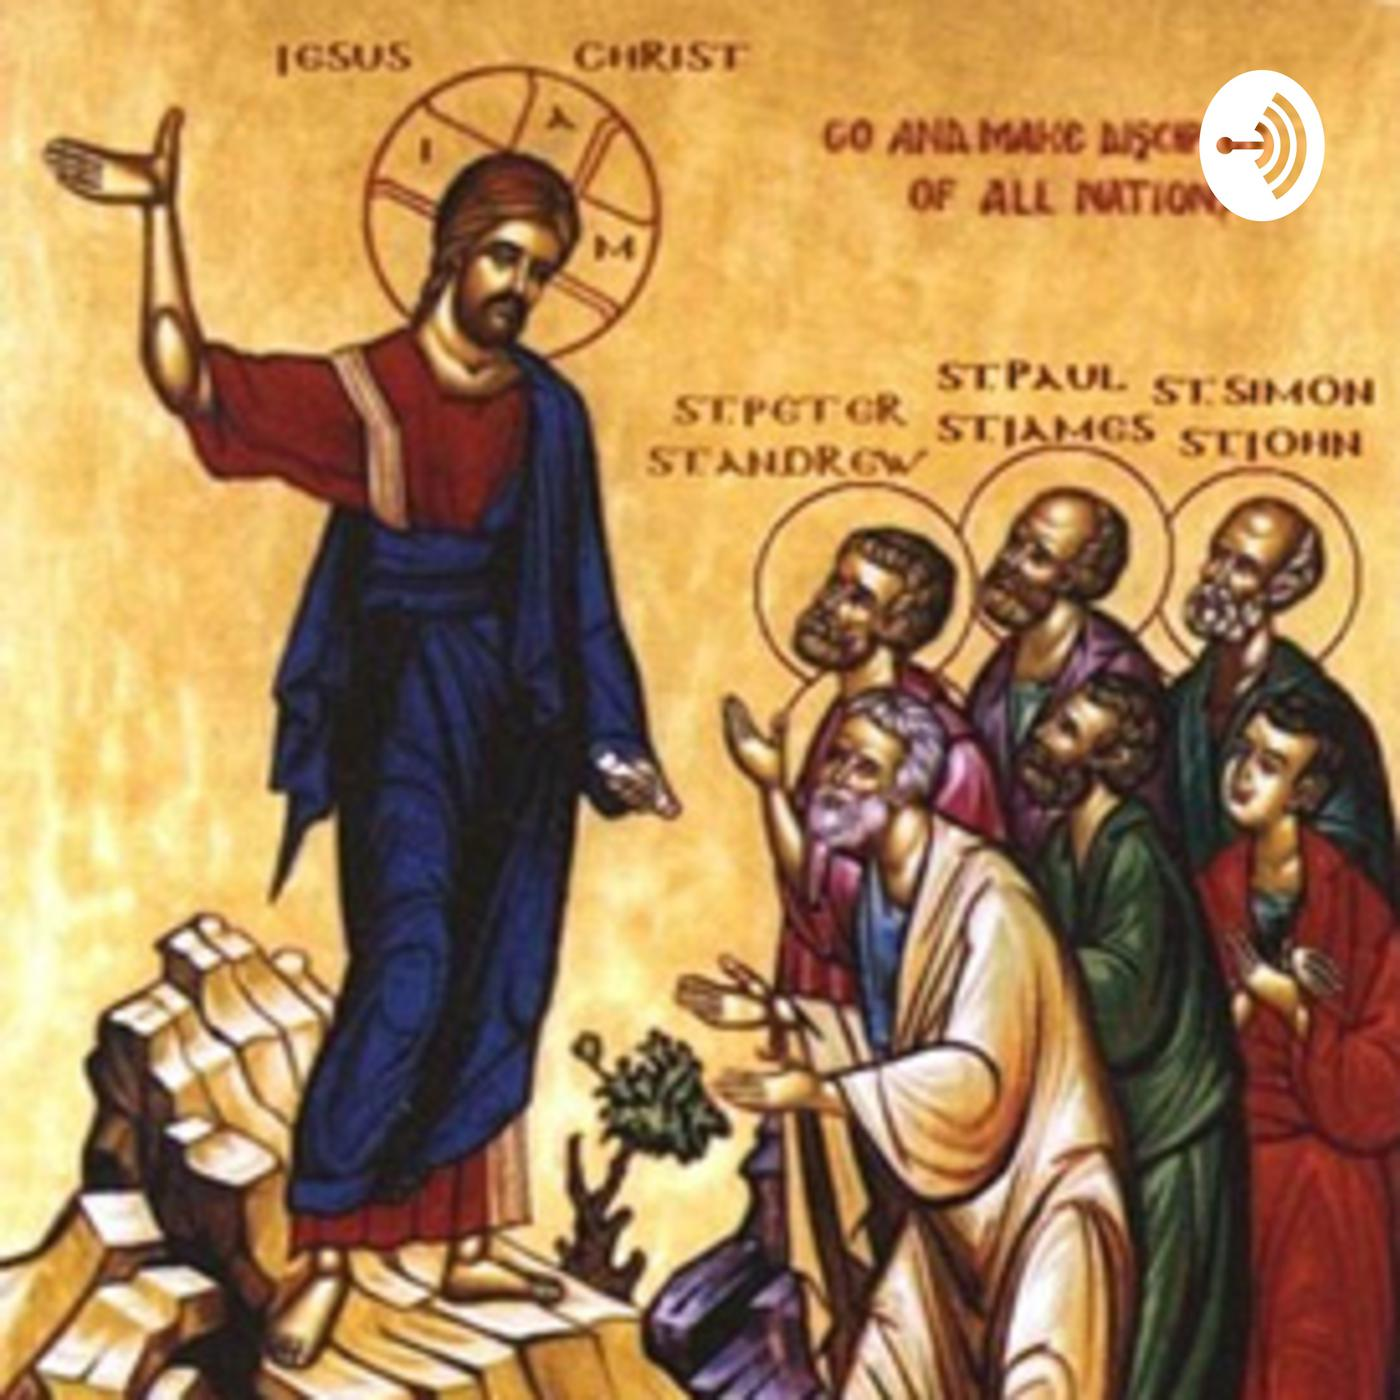 Sixth Sunday in Ordinary Time (Year C) - February 17, 2019